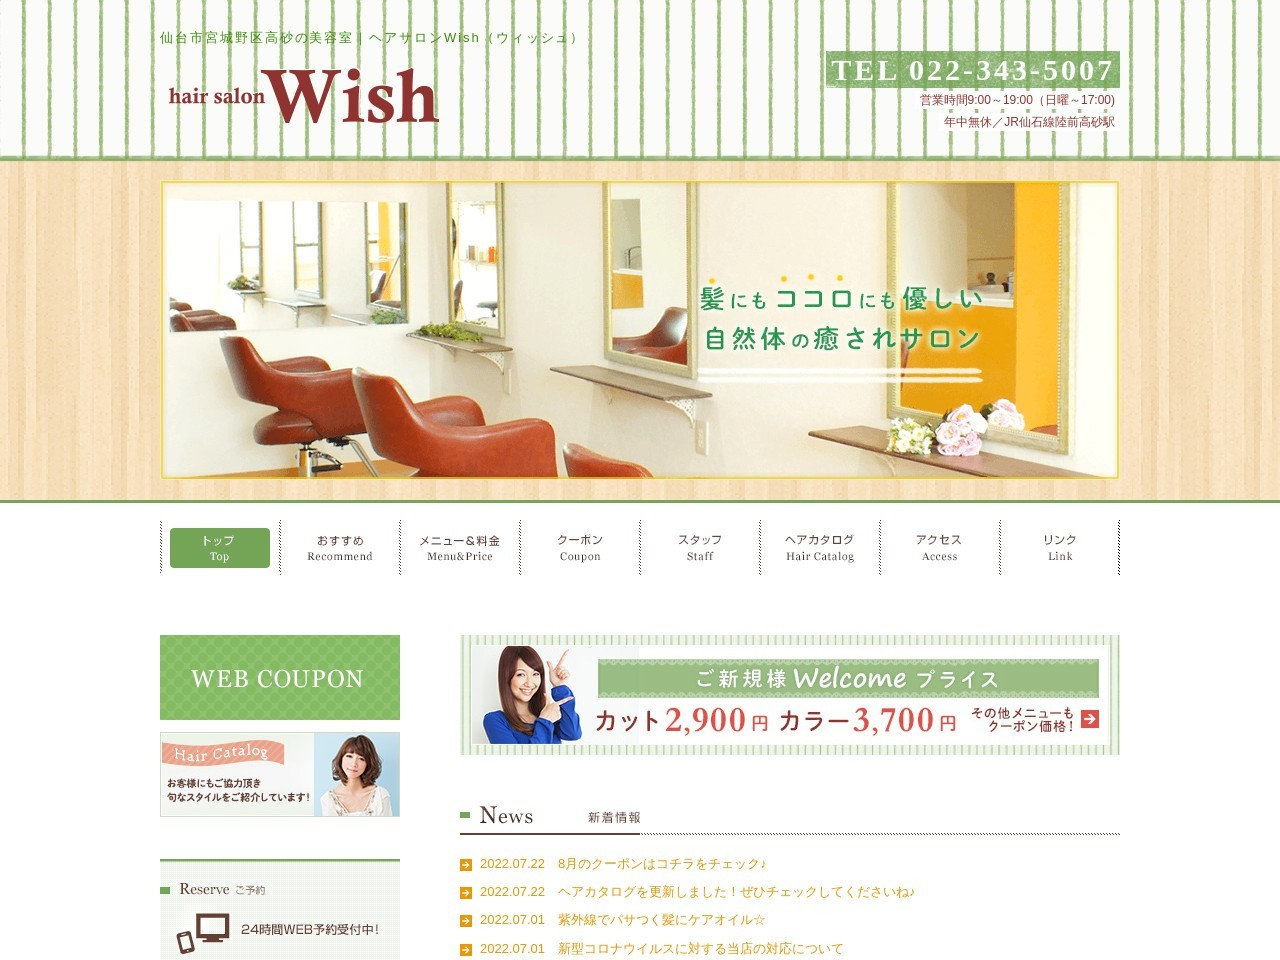 hair salon Wish(ウィッシュ)